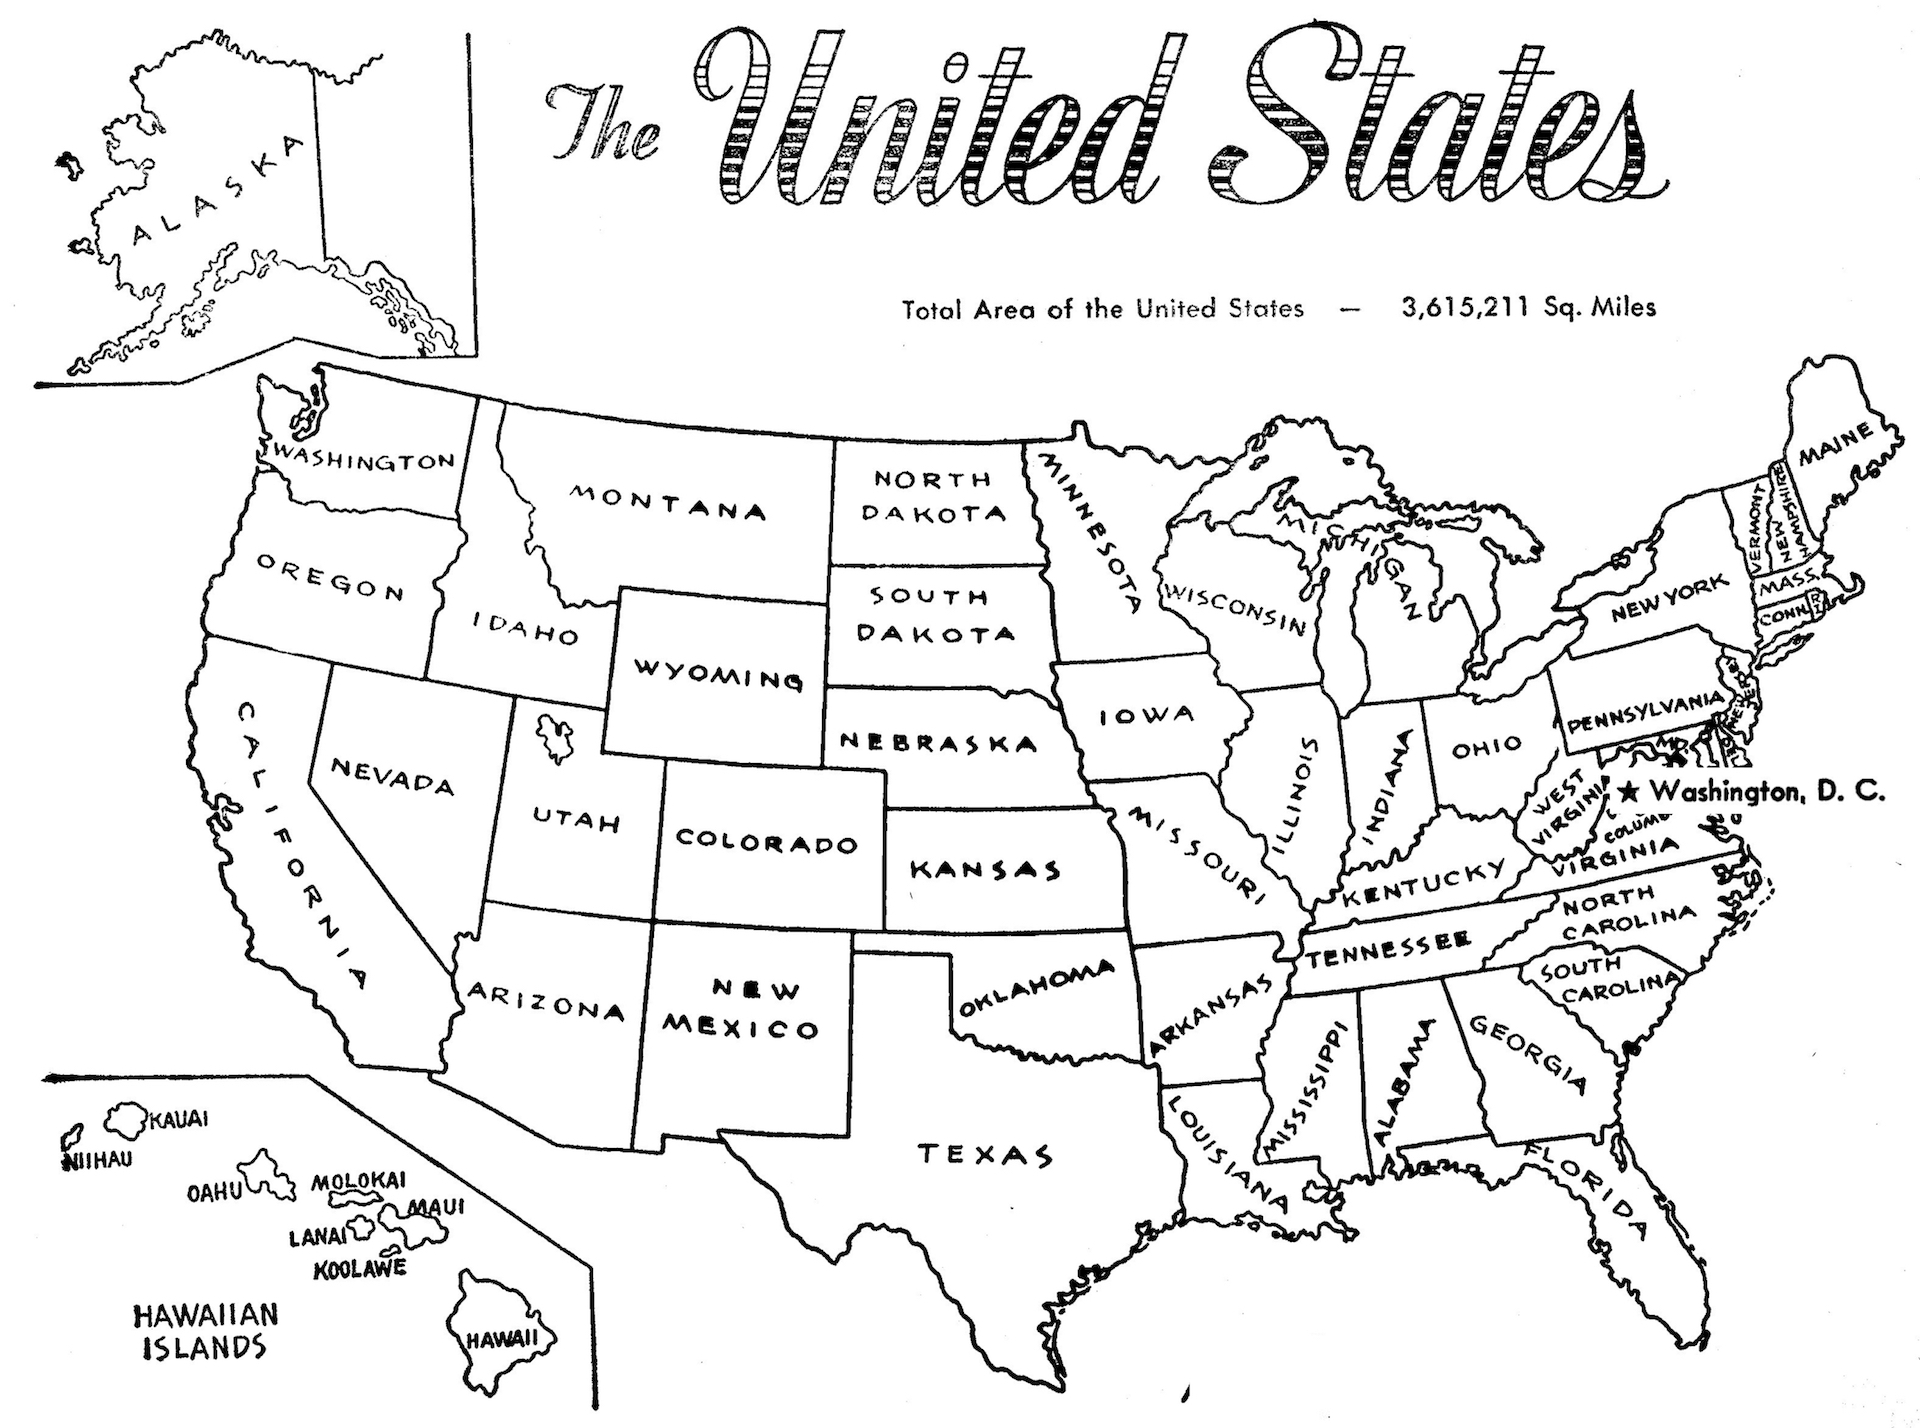 us map collection with national maps coloring and more creative things to do at home coloring pages United States Map Coloring Page